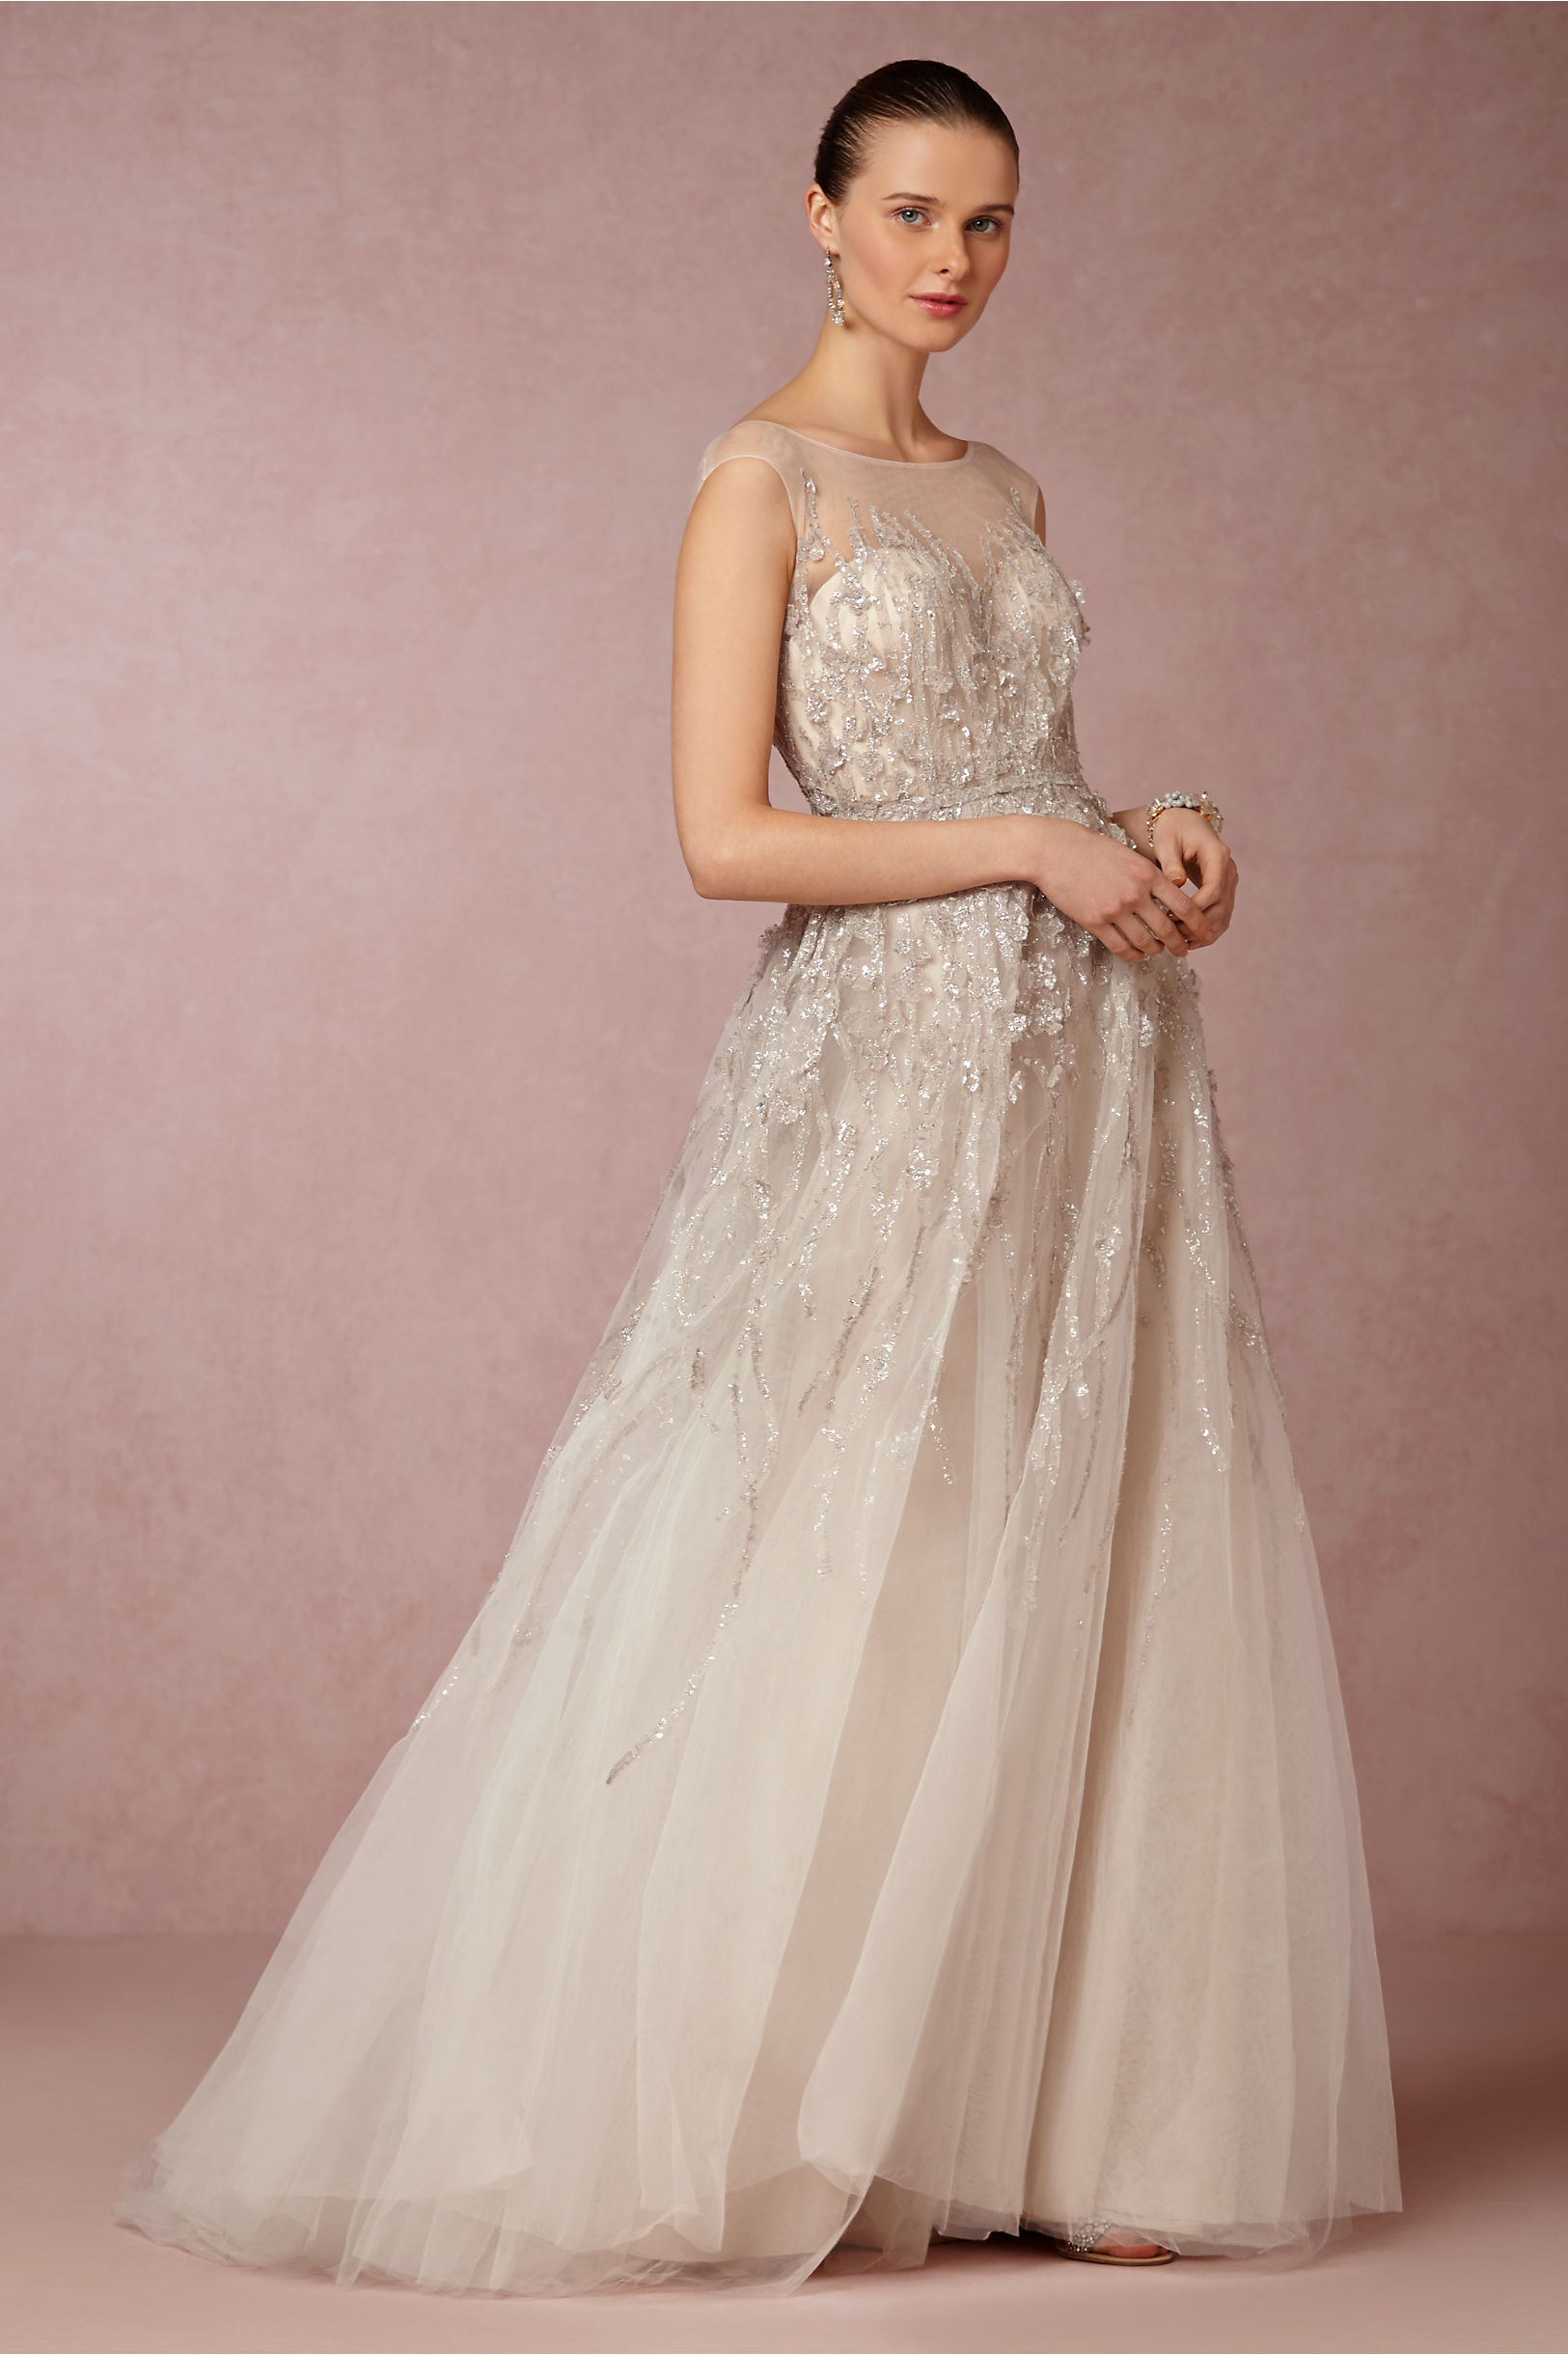 Wisteria Gown in Bride | BHLDN